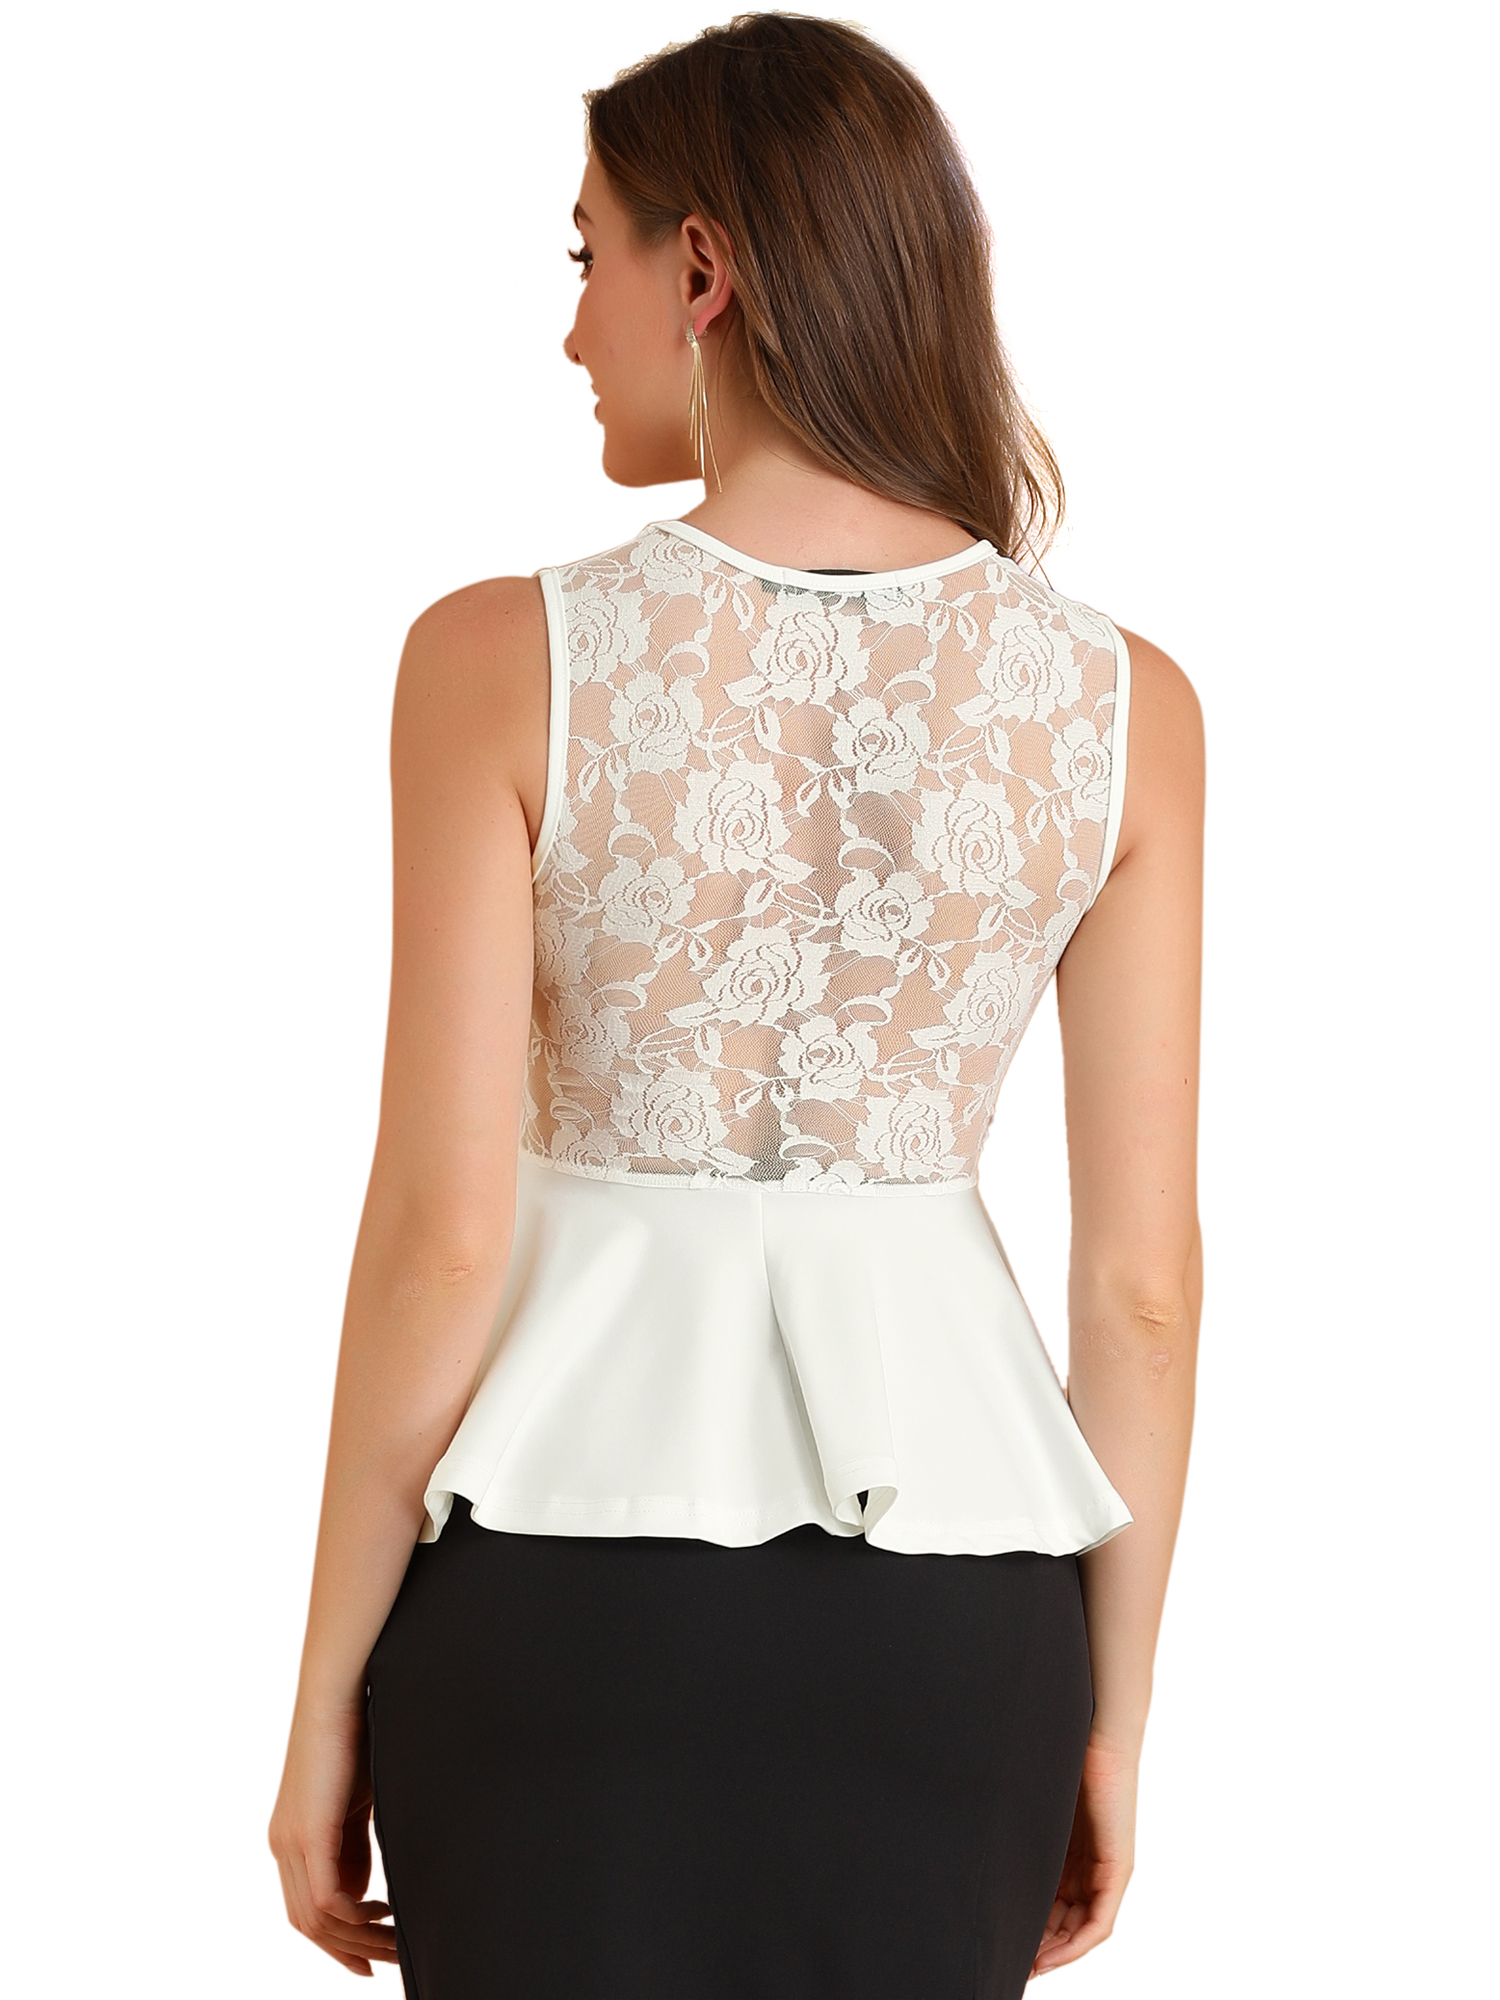 Lady Round Neck Sleeveless Lace Peplum Tops White L